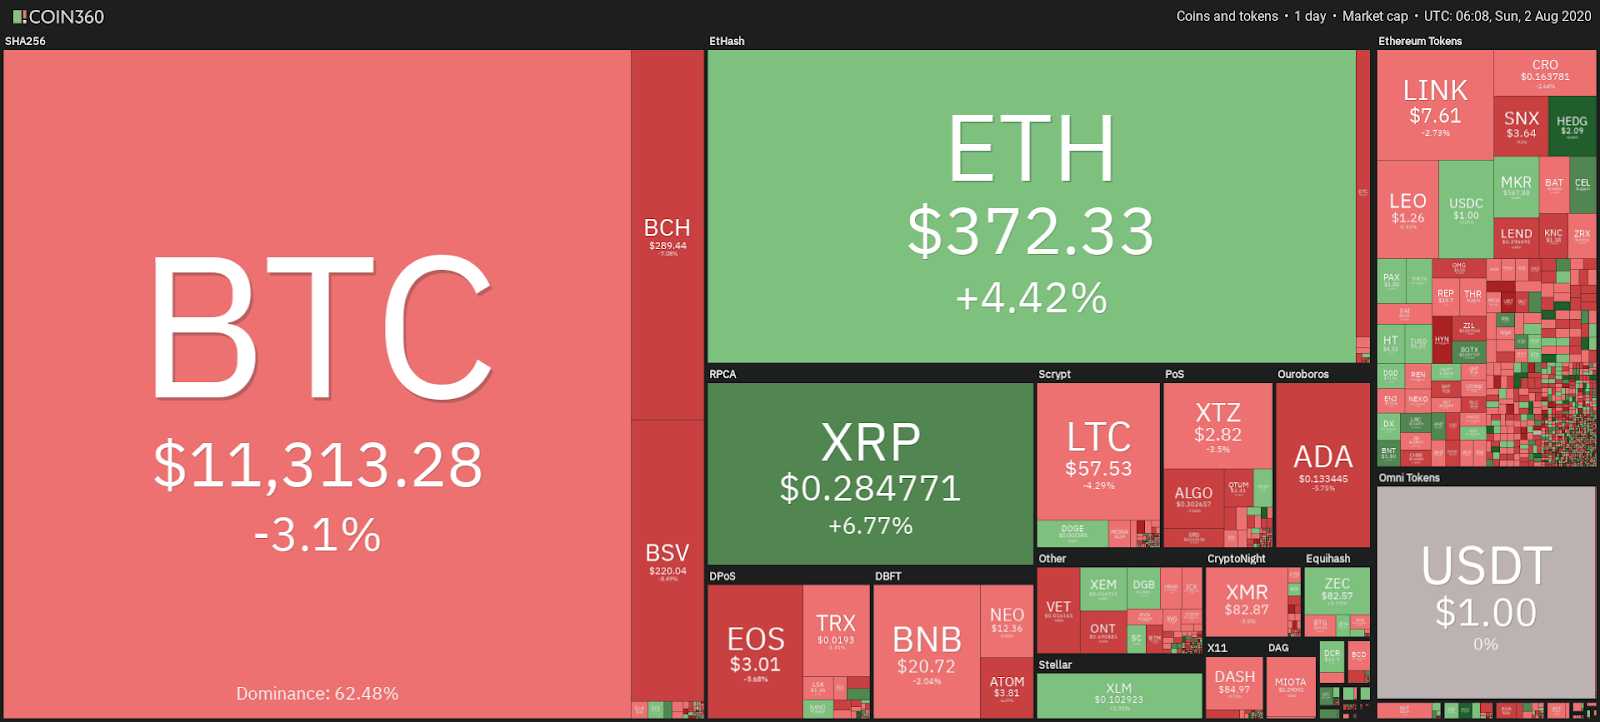 Snapshot of the cryptocurrency market, 2 August